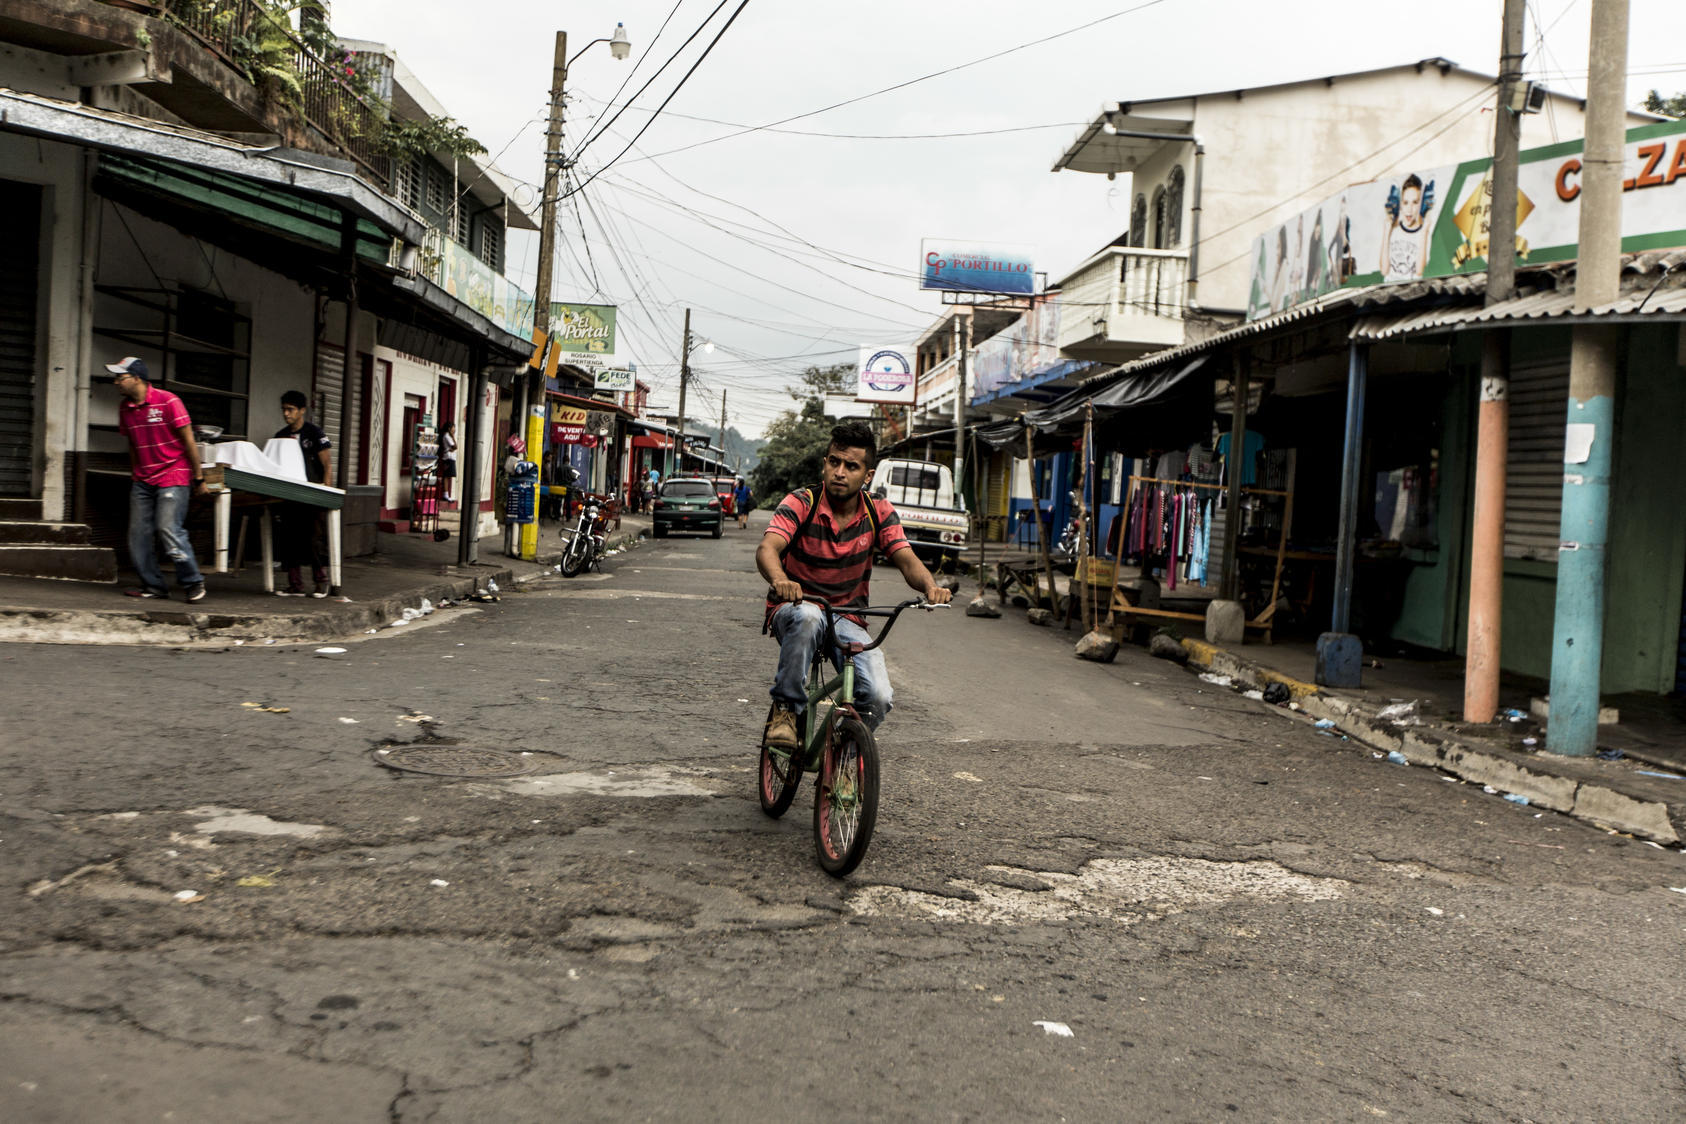 A bicyclist in Berlín, a town in El Salvador where gangs are somewhat less of a problem than in the larger cities